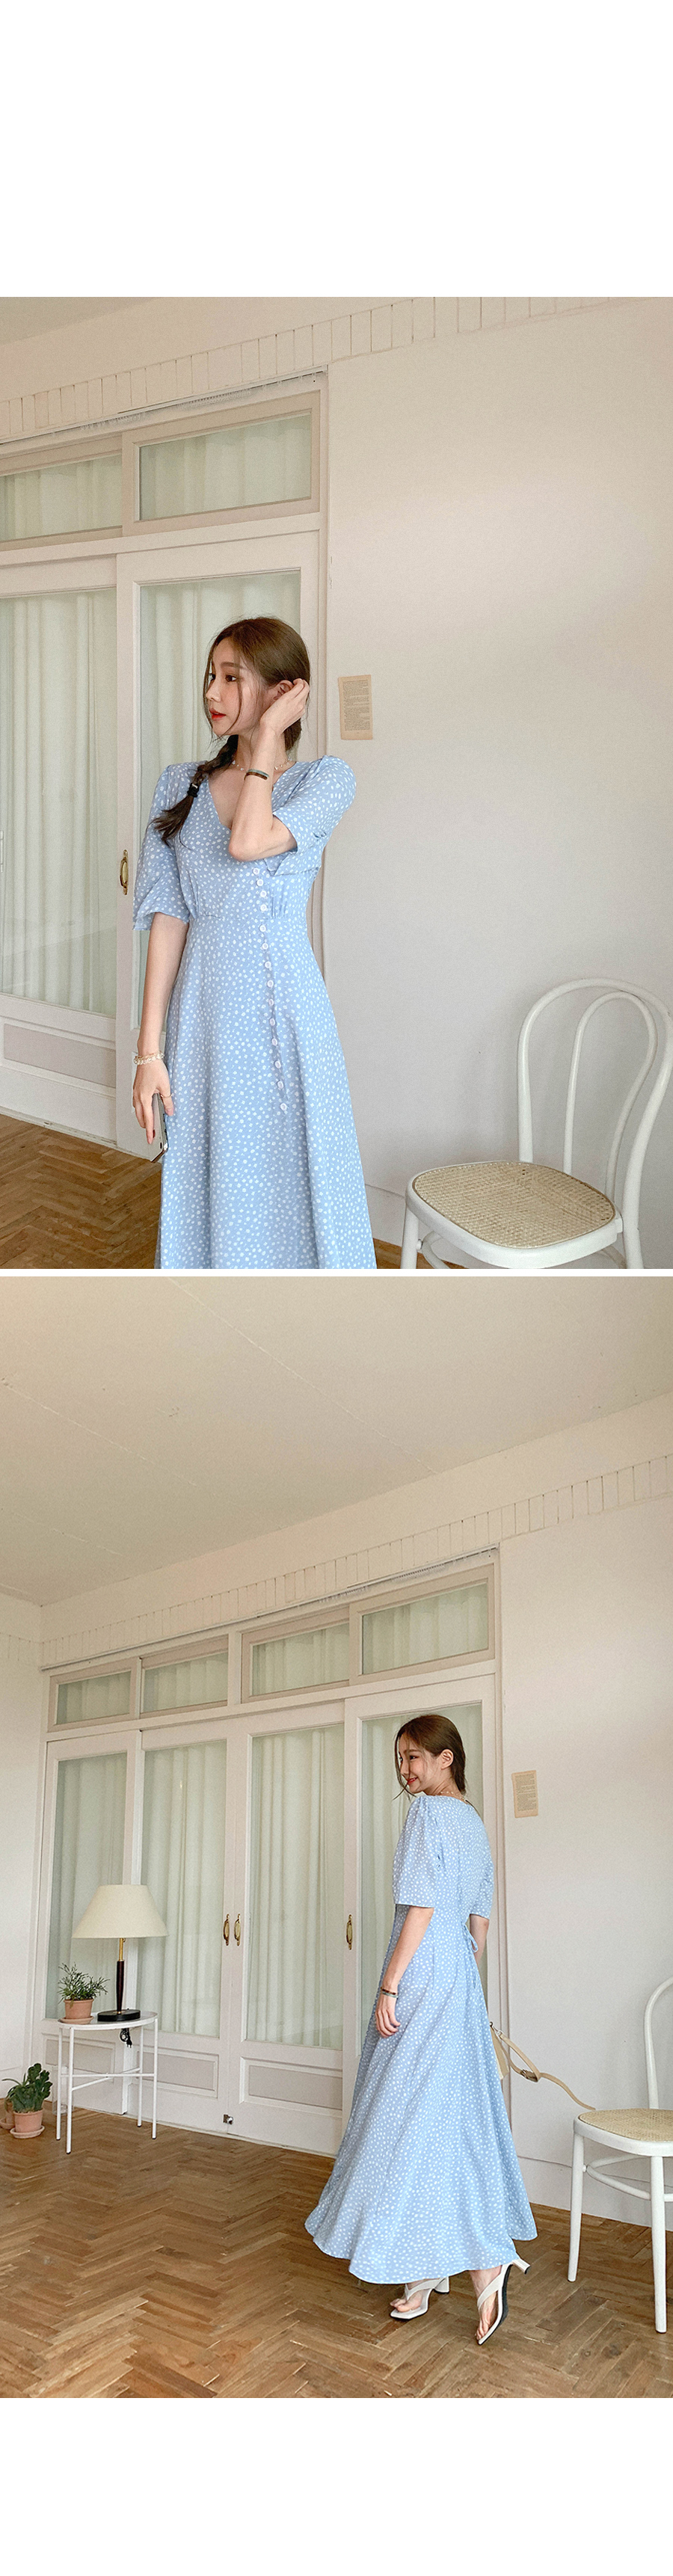 Exciting flower button long dress